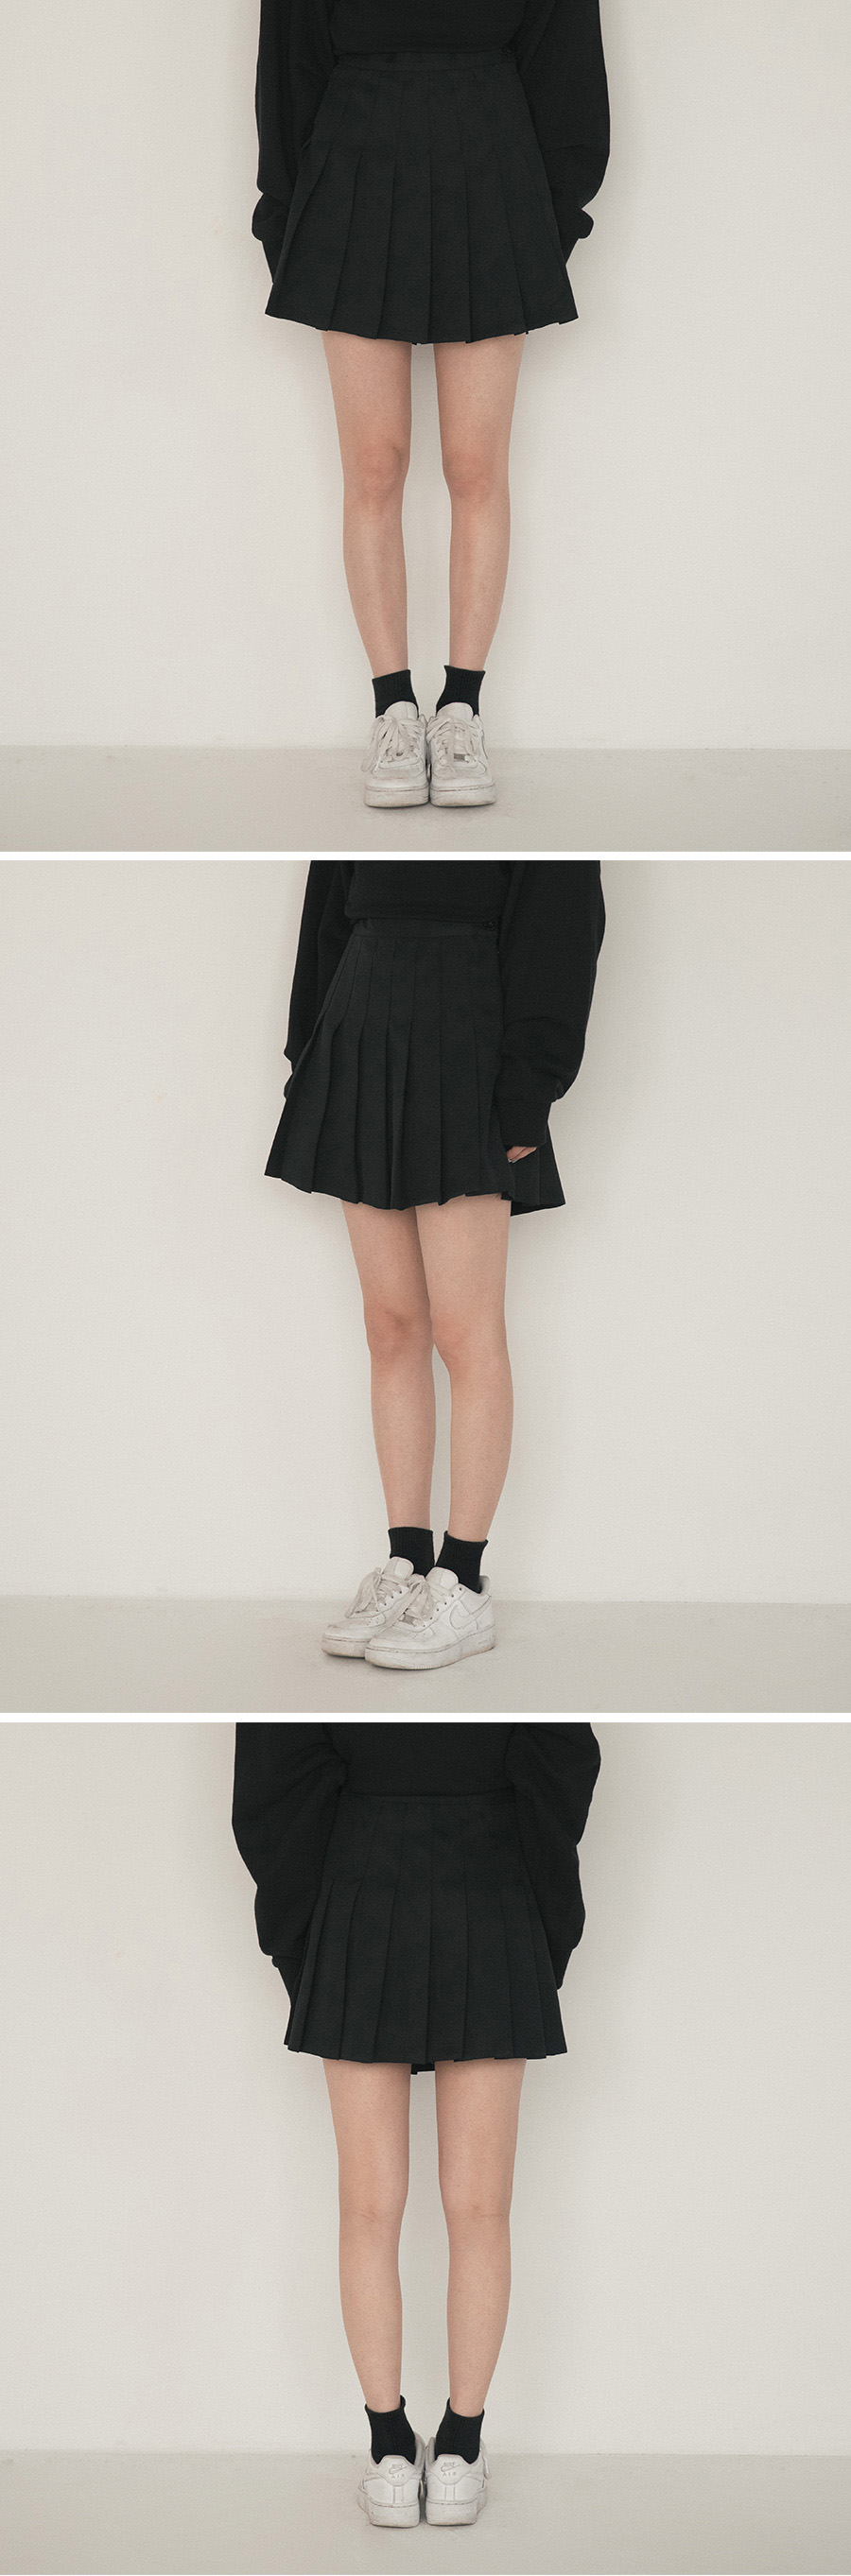 basic simple tennis skirt